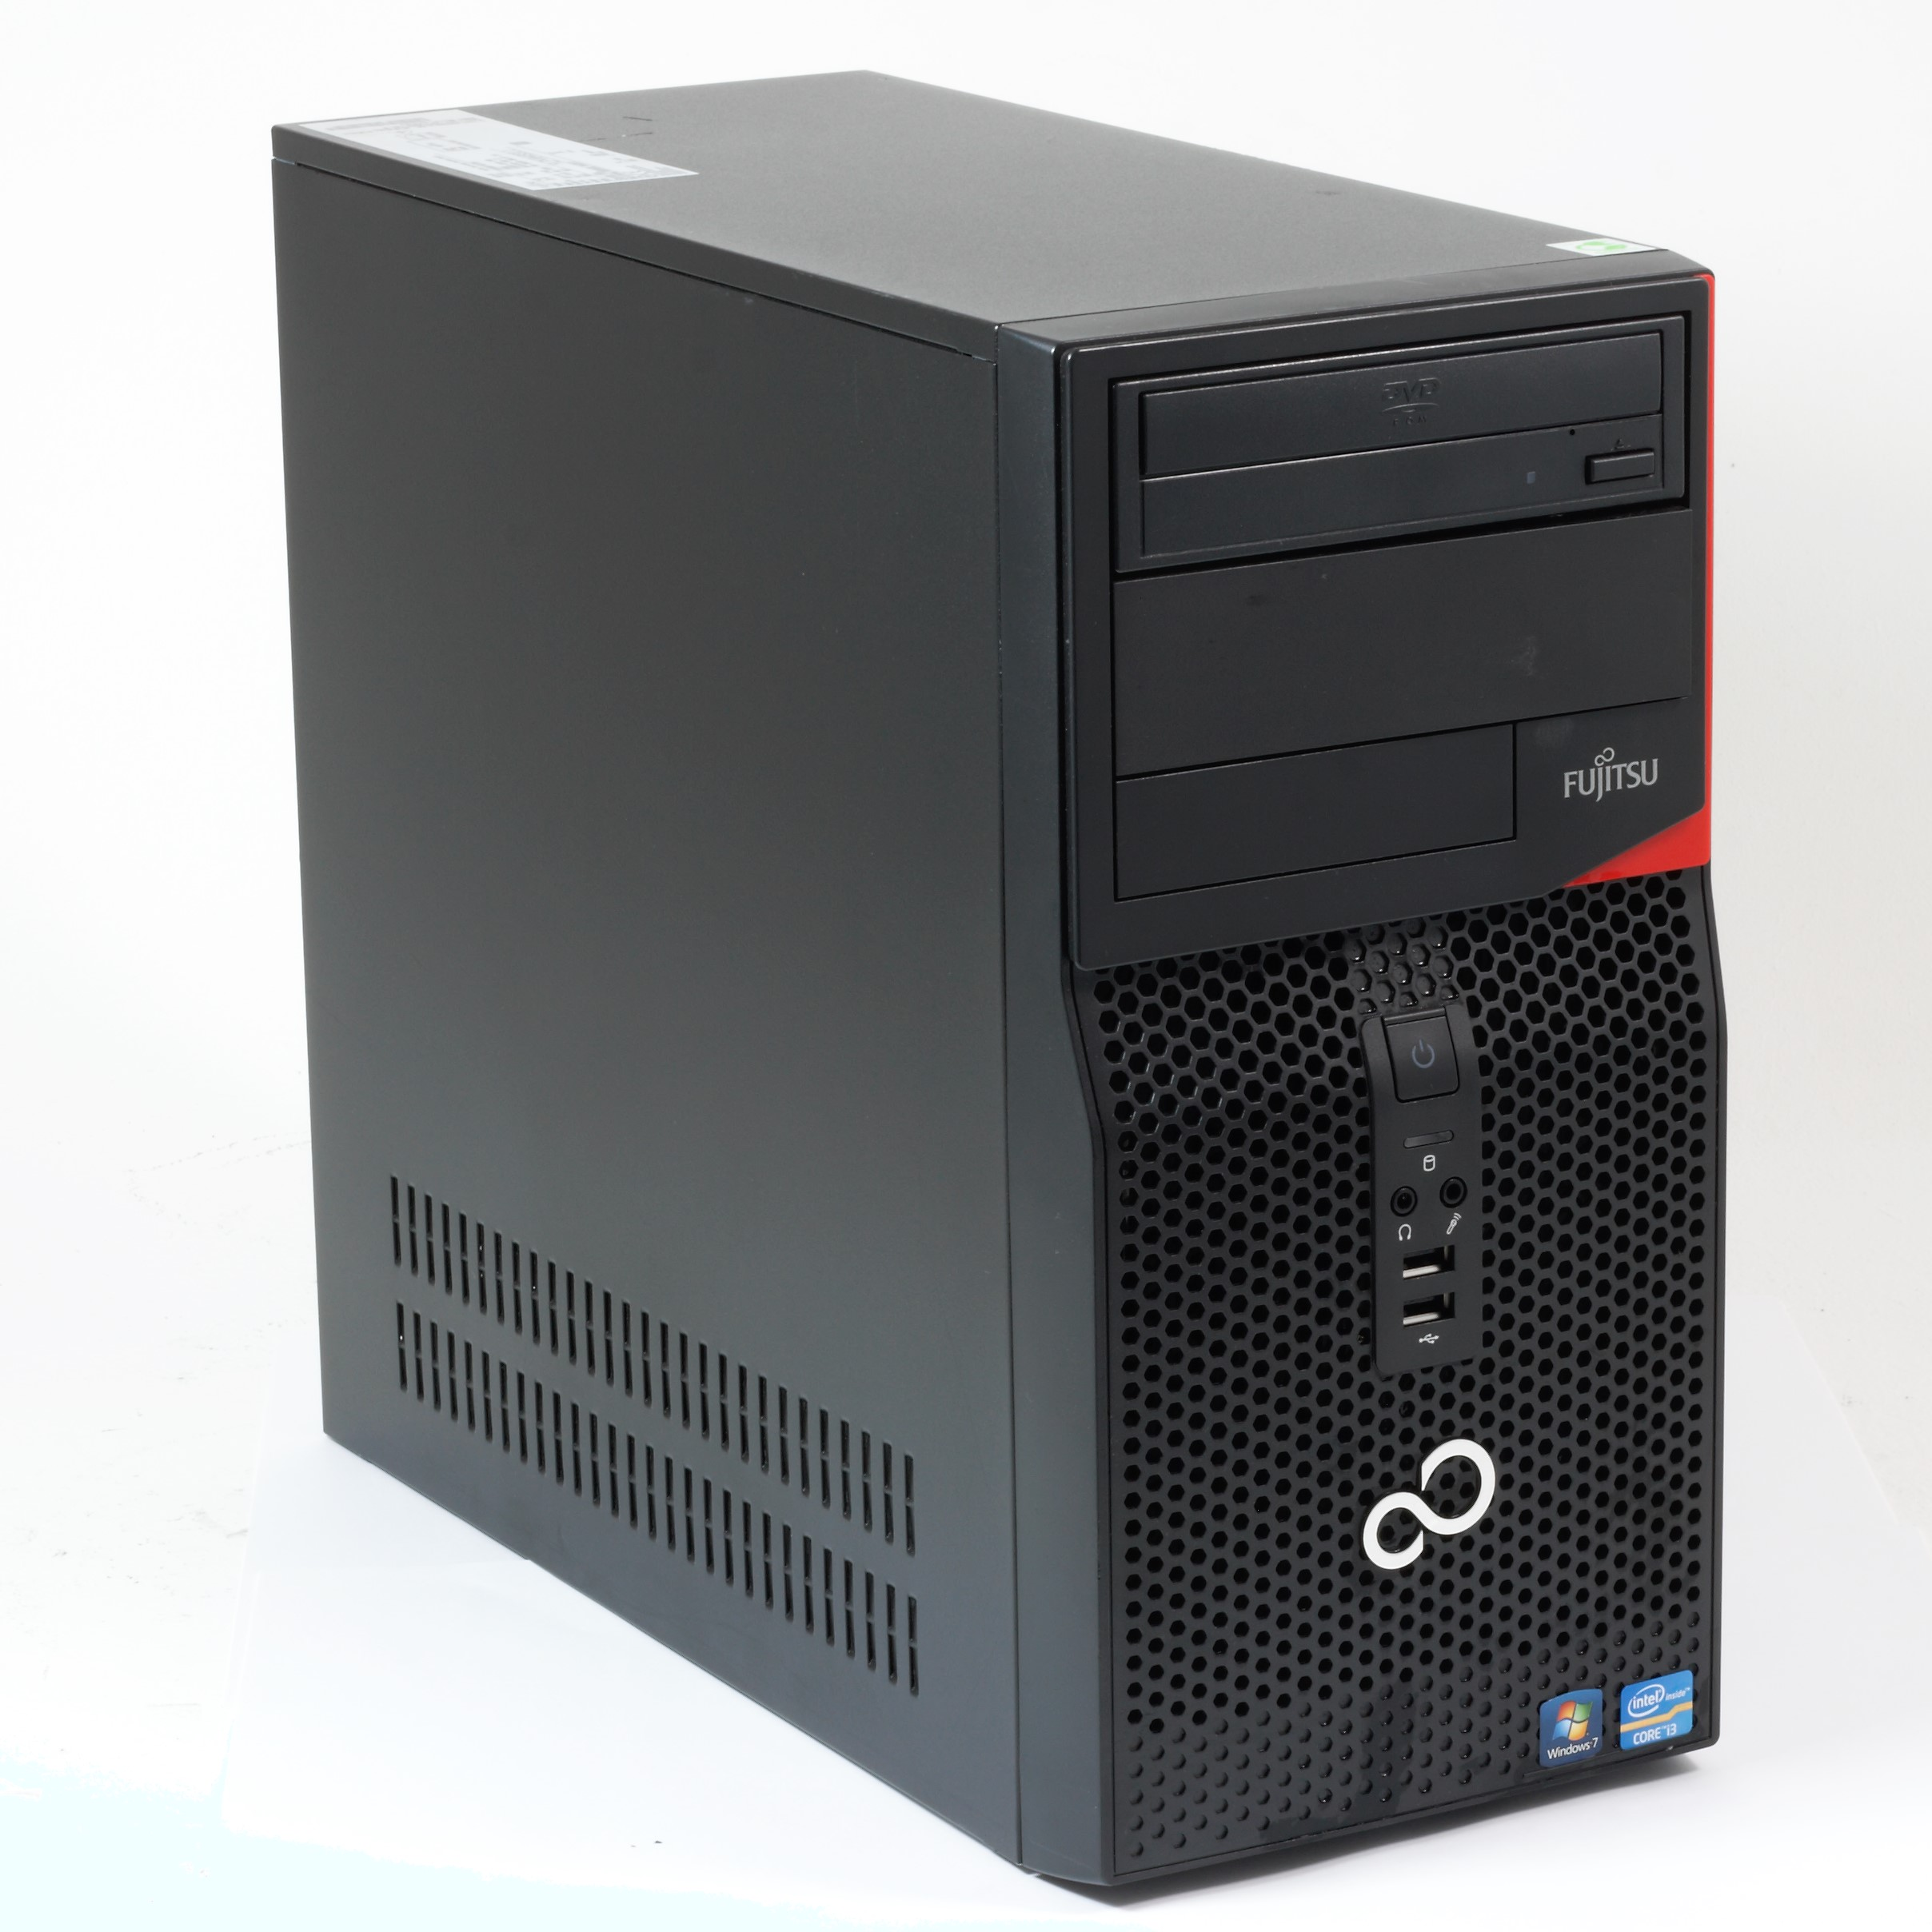 Fujitsu Esprimo P410 Minitower PC Core i7 3770 3,4GHz 500GB HDD 8GB RAM DVD ROM